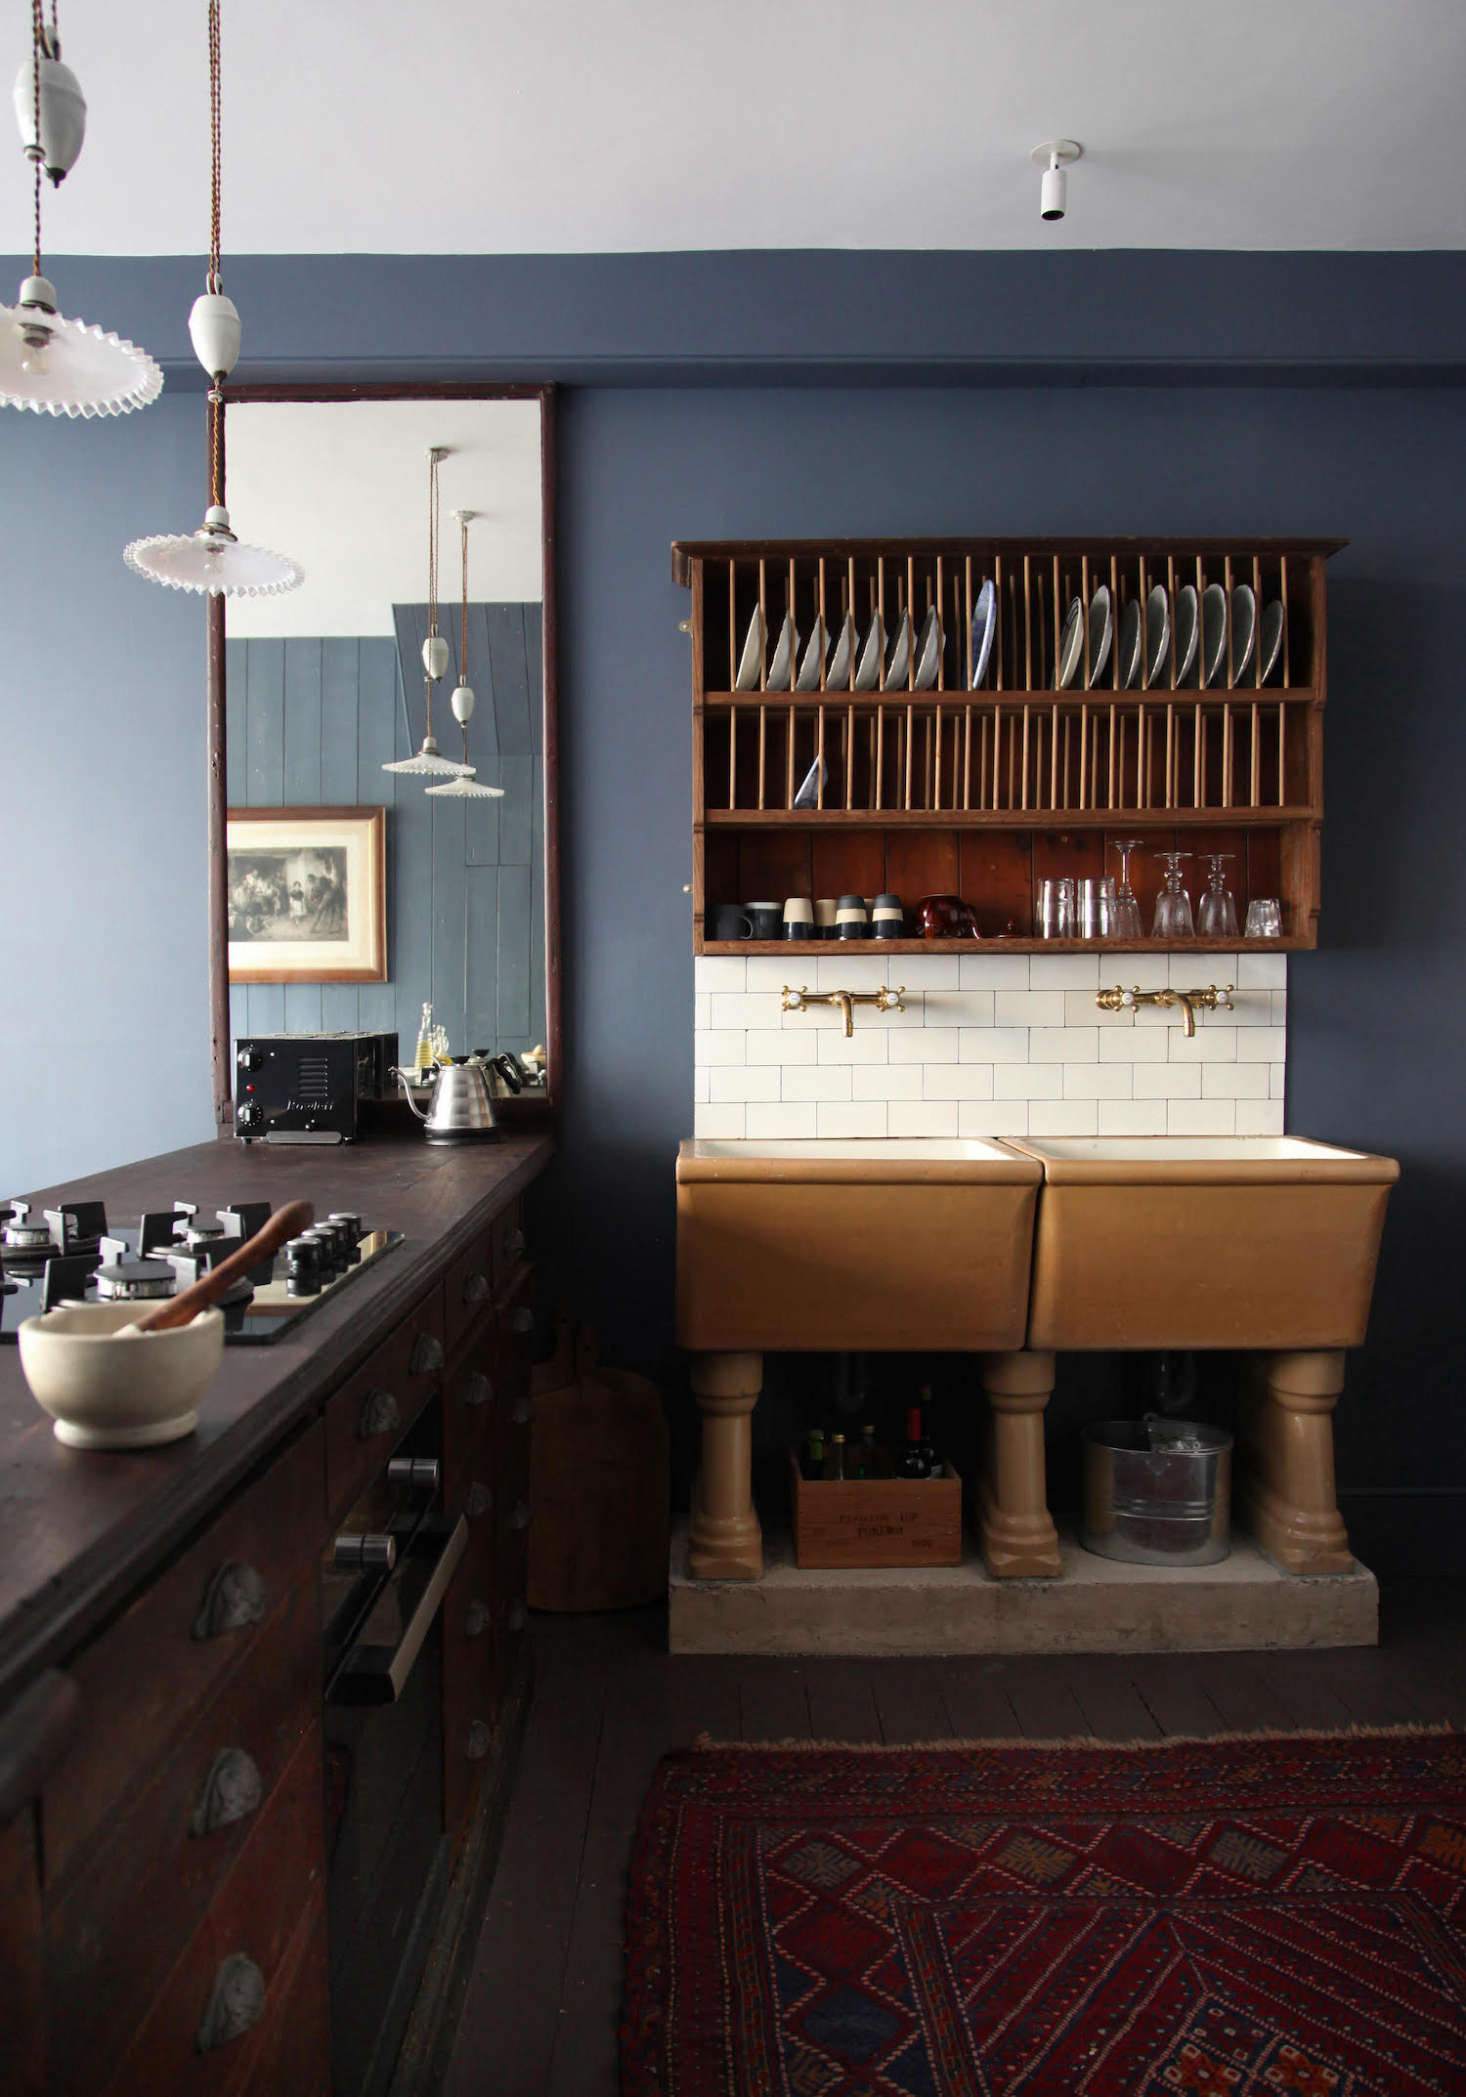 """The project required a lot of sleuthing and reimagining. """"In a back room we found what we imagine was the original counter, and decided to use this to house the kitchen, reinstating it in the same position per the 90 plans,"""" says Patrick. Made of mahogany, it's now fitted with a cooktop and stove, and immediately to their left, an under-counter fridge hidden behind what looks like a set of drawers. The mirror was found in the space and """"happened to fit perfectly."""""""